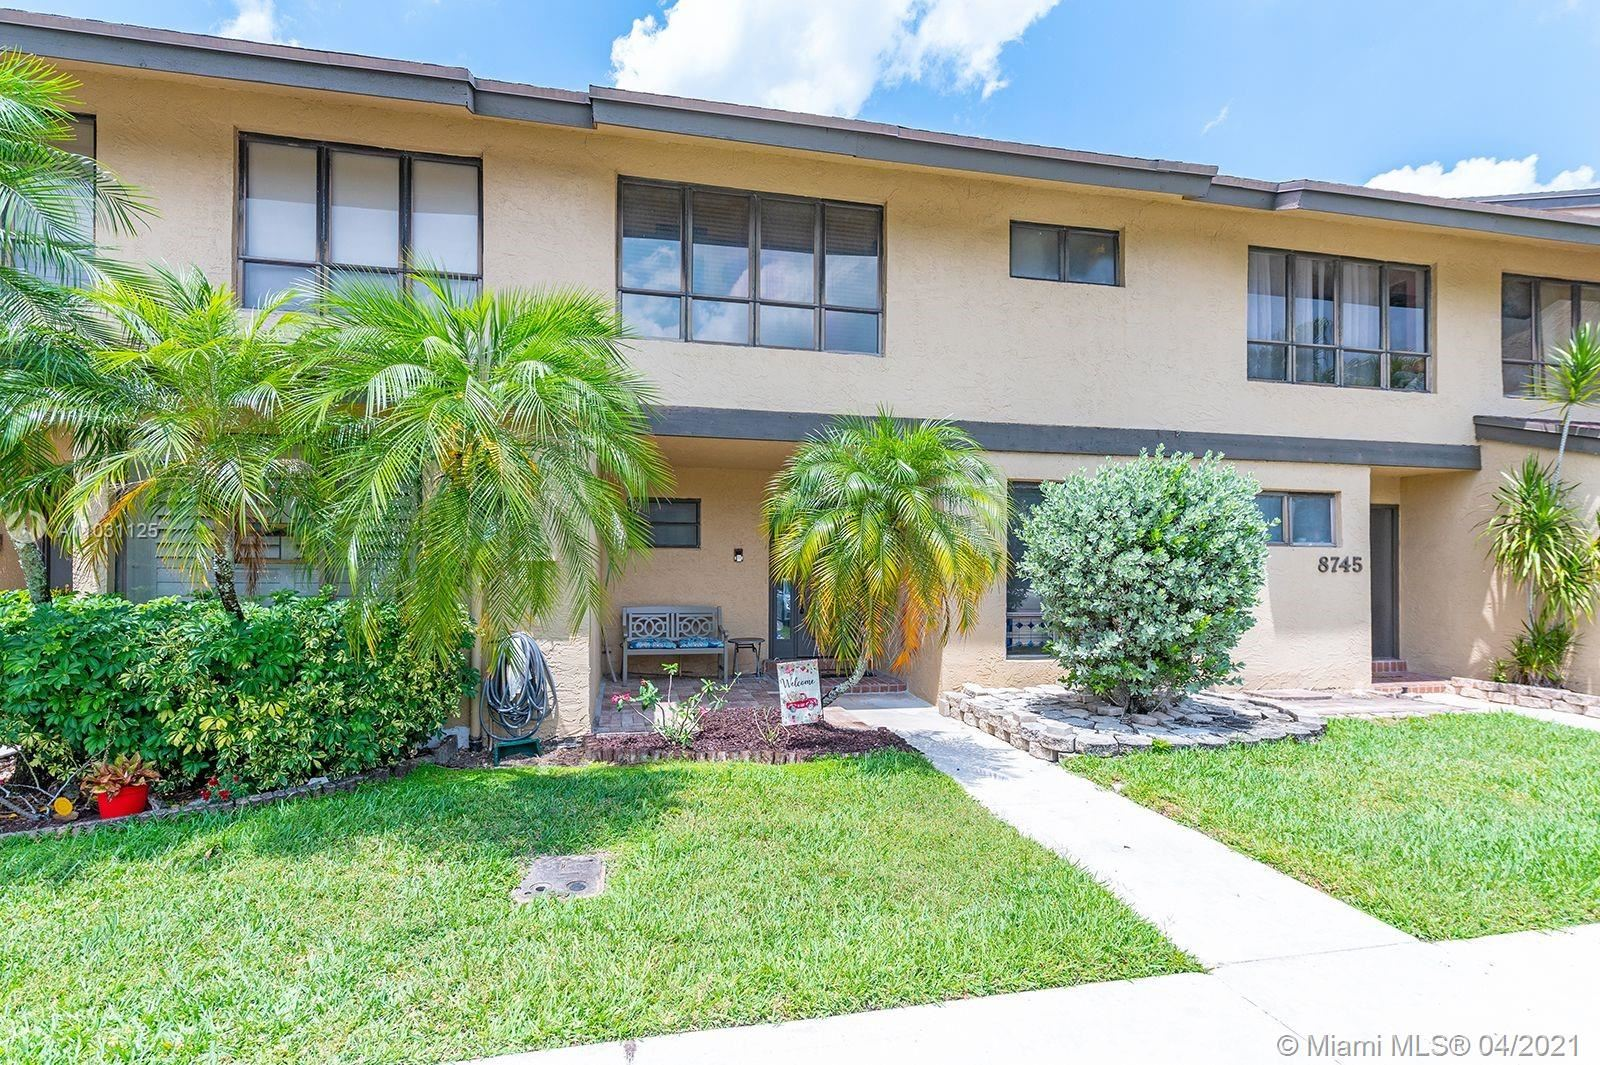 8747 Cleary Blvd #8747, Plantation, FL 33324 - #: A11031125